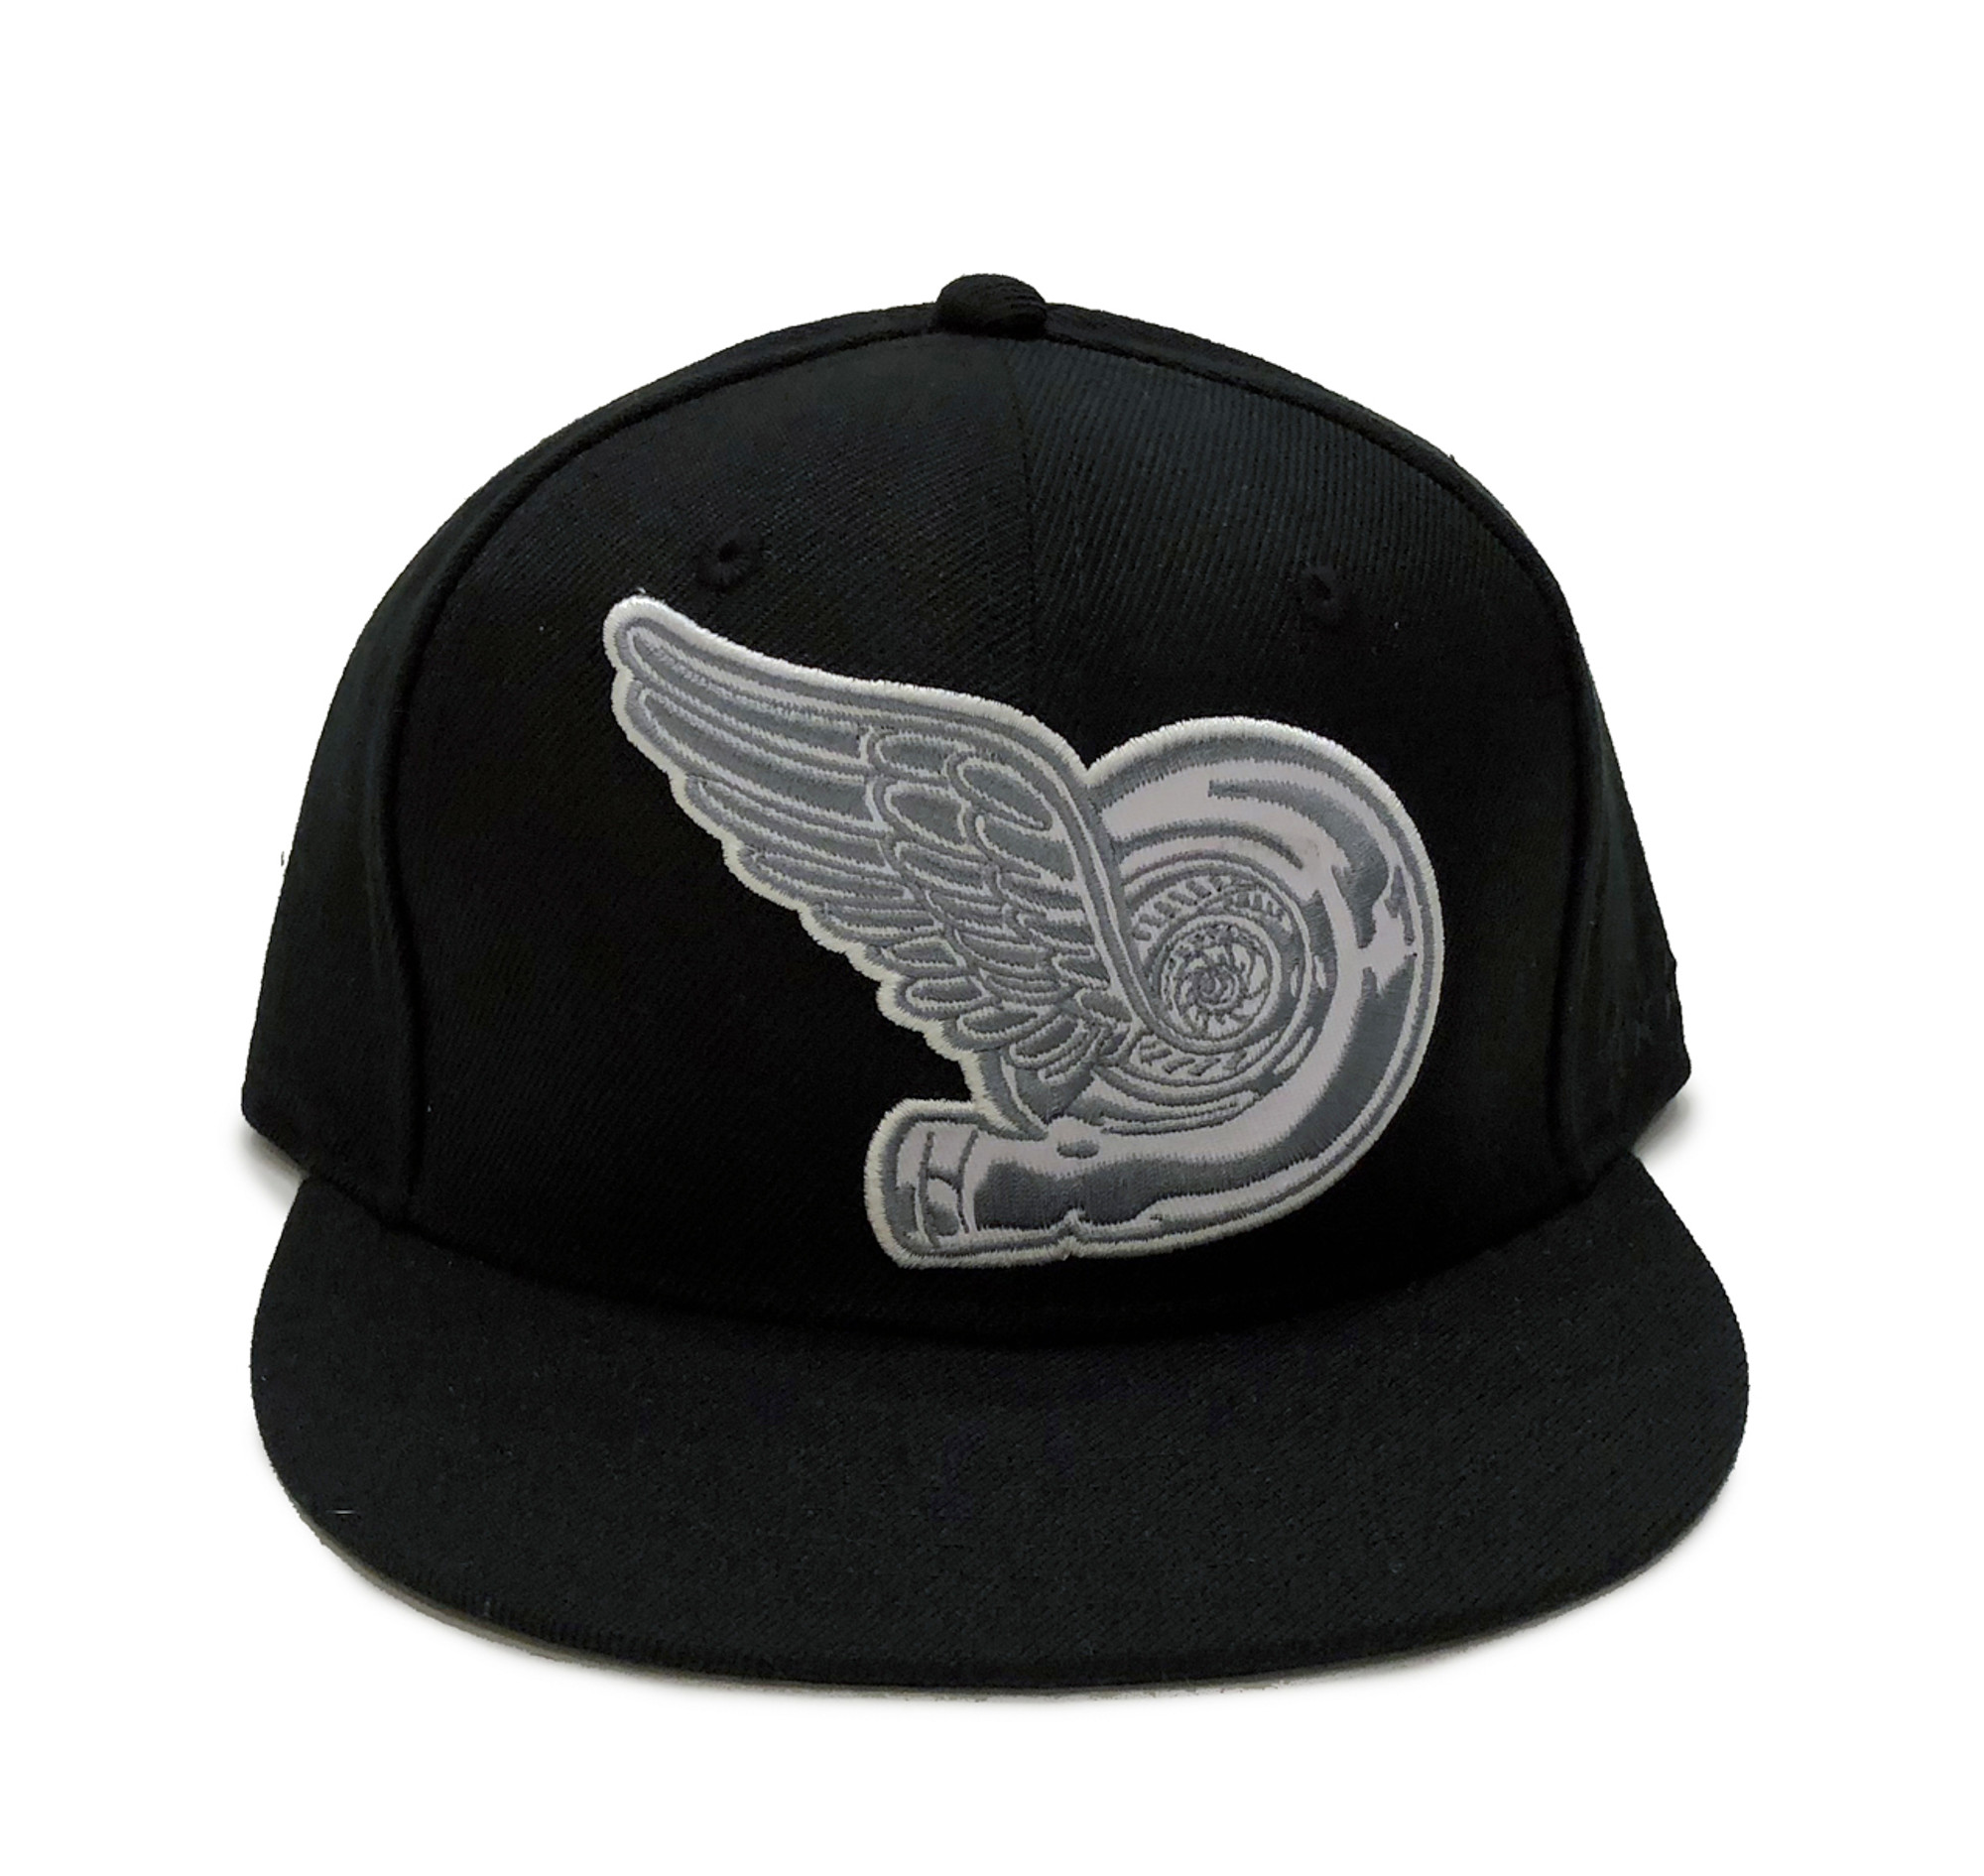 e105a02a1d0c5e Turbo Wing Fitted Hat | Black-Silver - Eat Sleep Race - Racing Lifestyle  Apparel